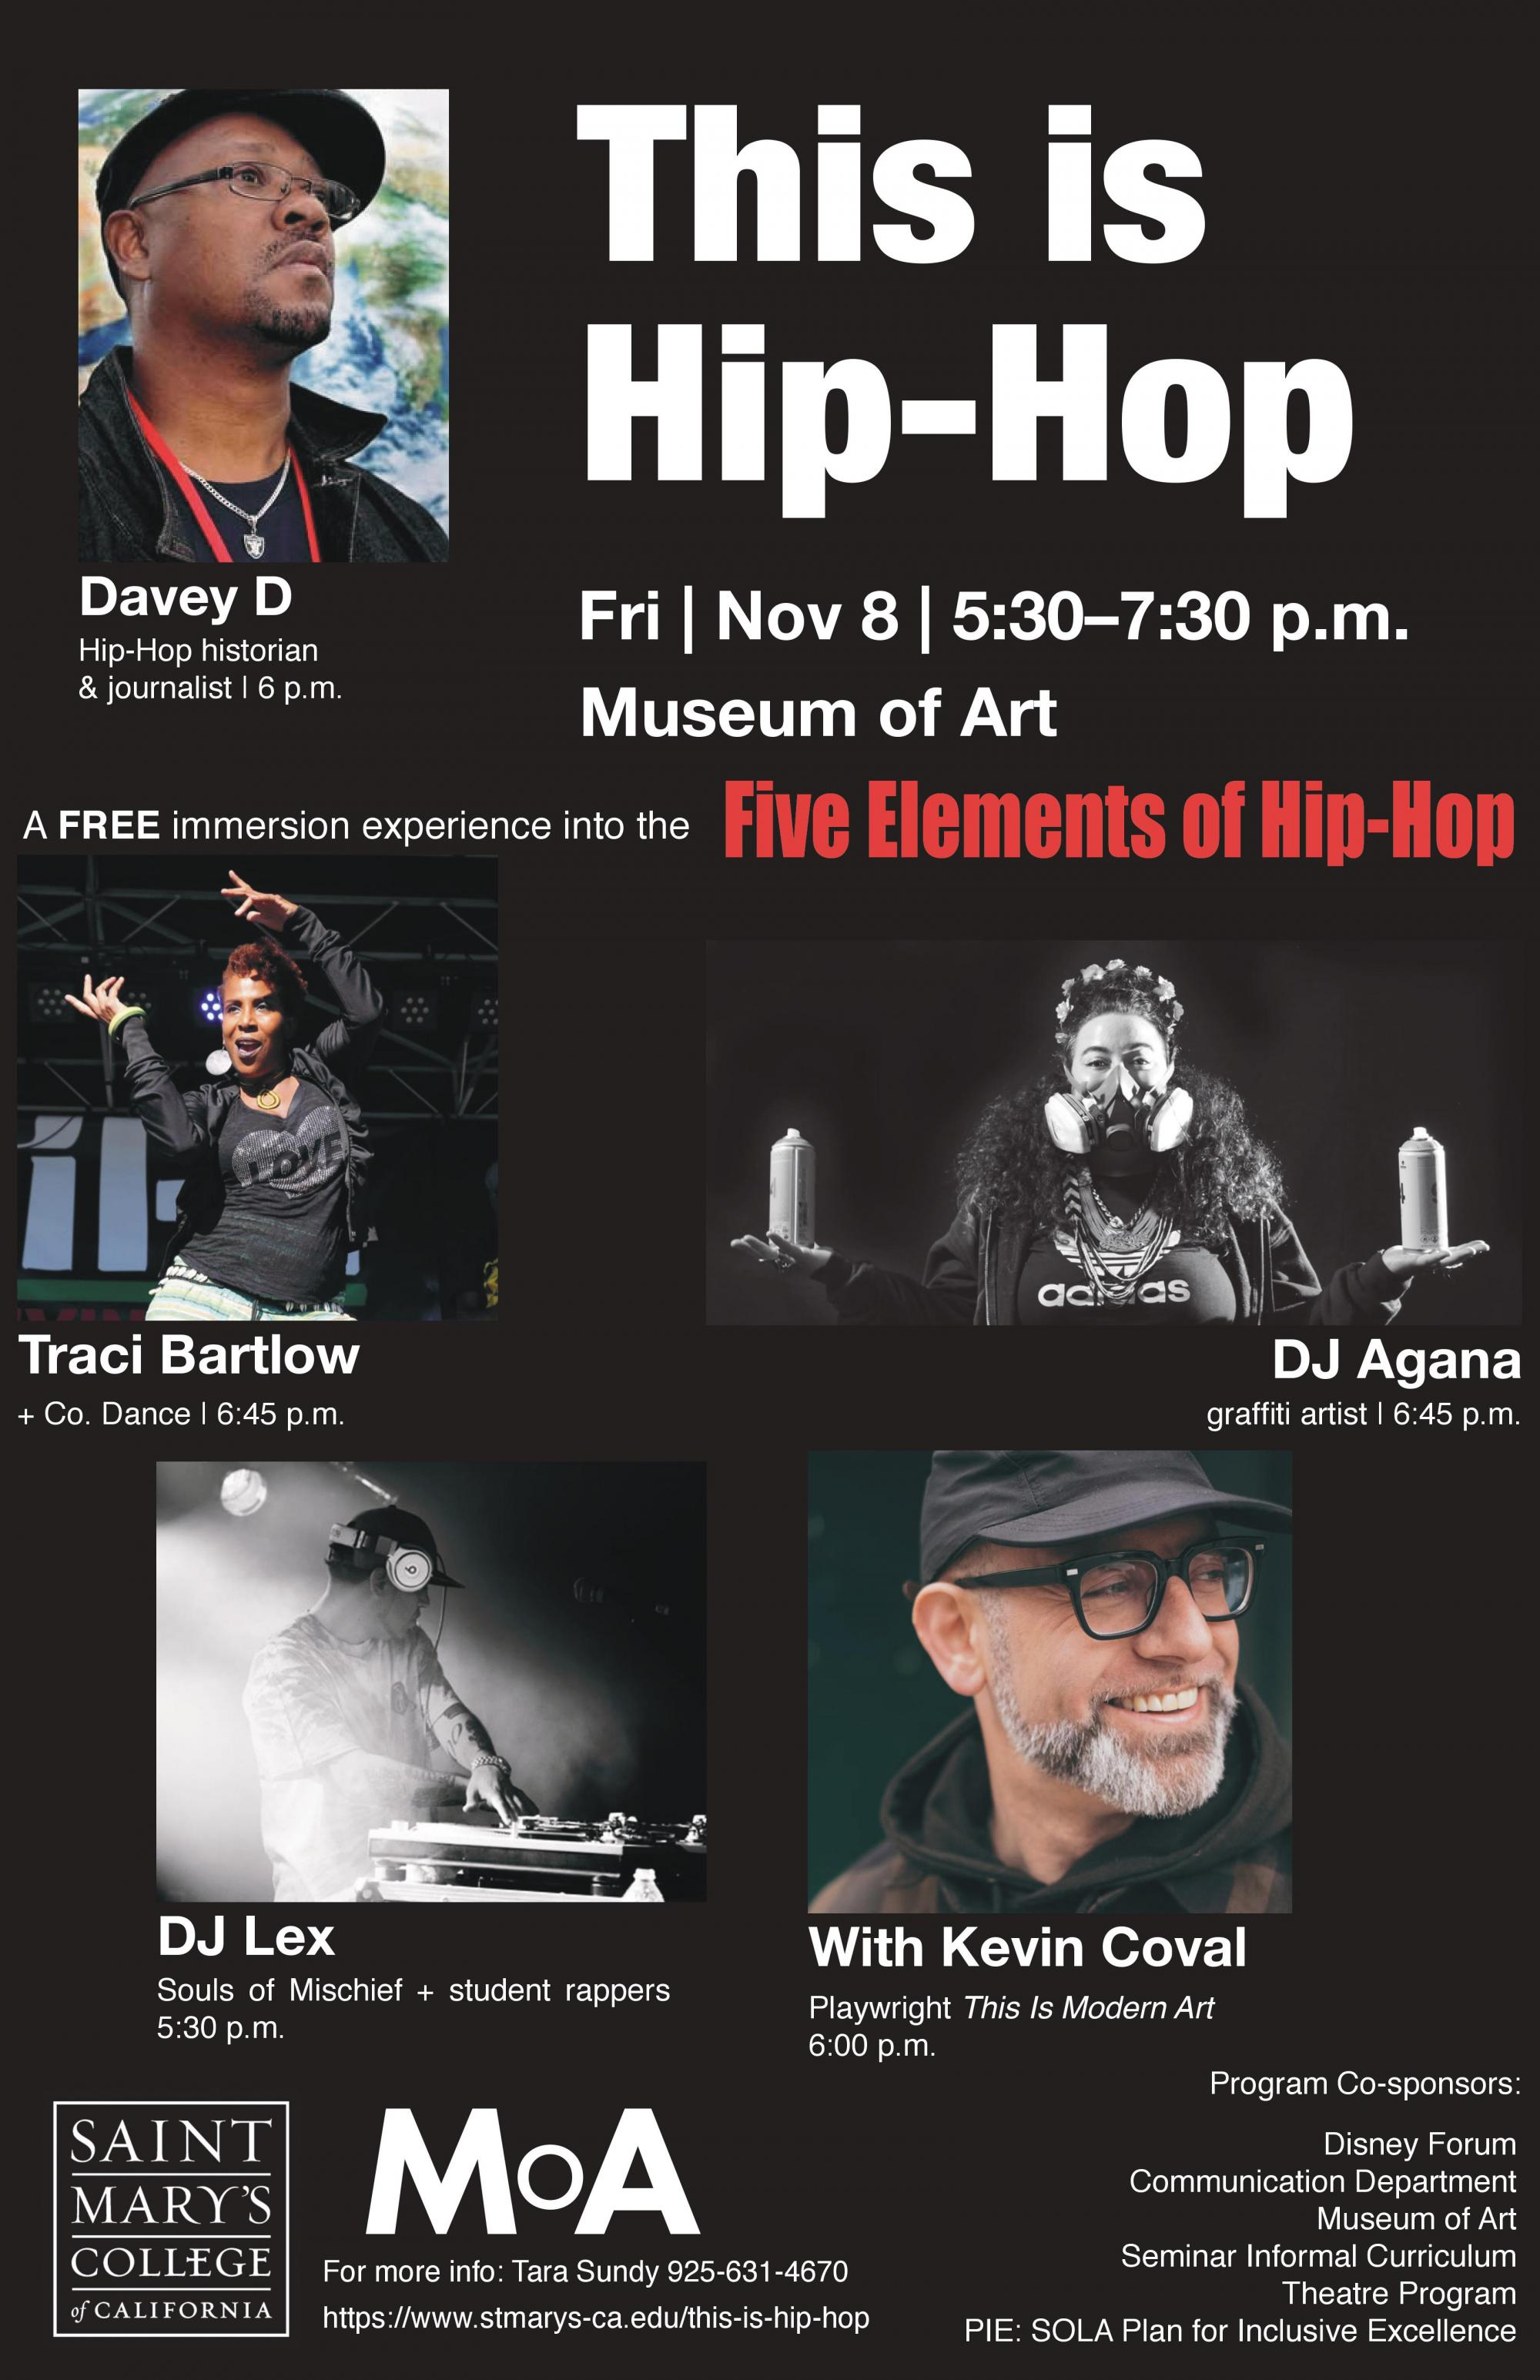 This is Hip-Hop Nov. 8 5:30-7:30pm SMC Museum of Art